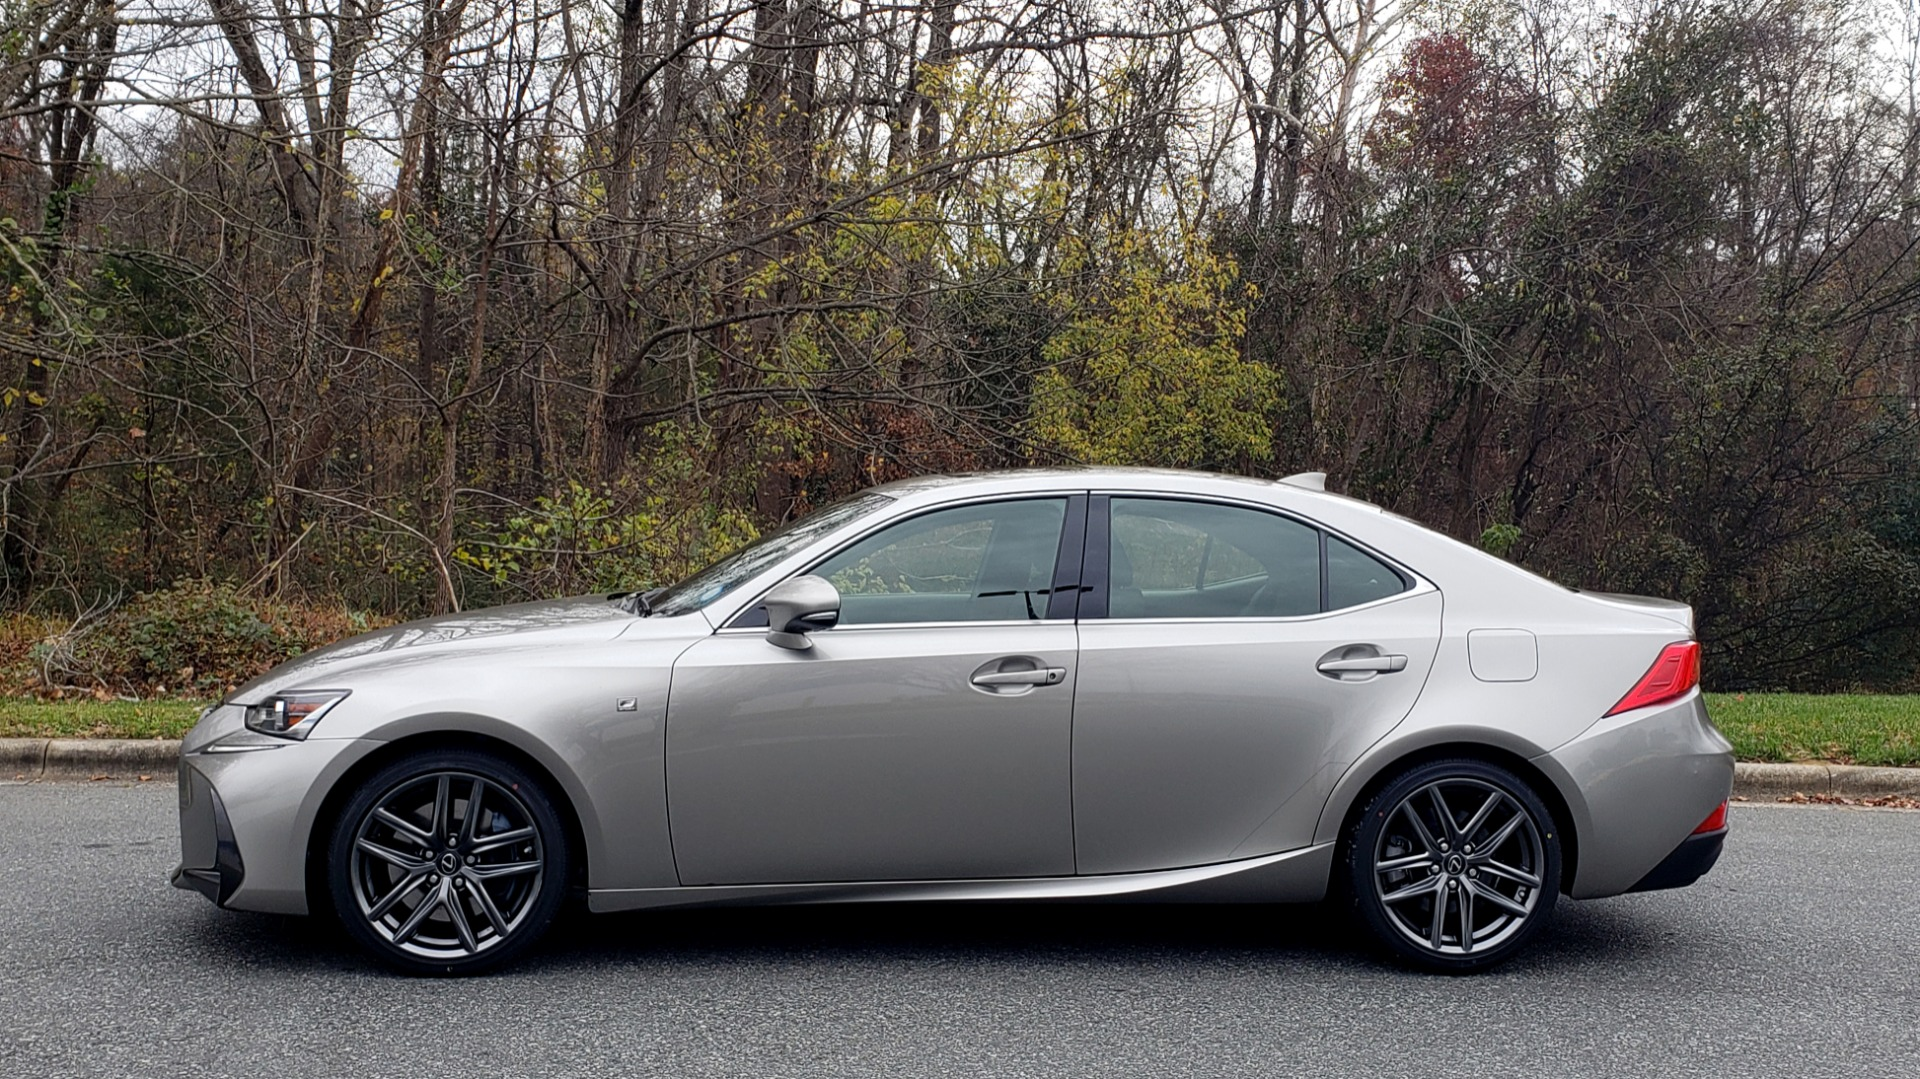 Used 2017 Lexus IS 200 TURBO F-SPORT / BSM / SUNROOF / VENT SEATS / REARVIEW for sale Sold at Formula Imports in Charlotte NC 28227 2